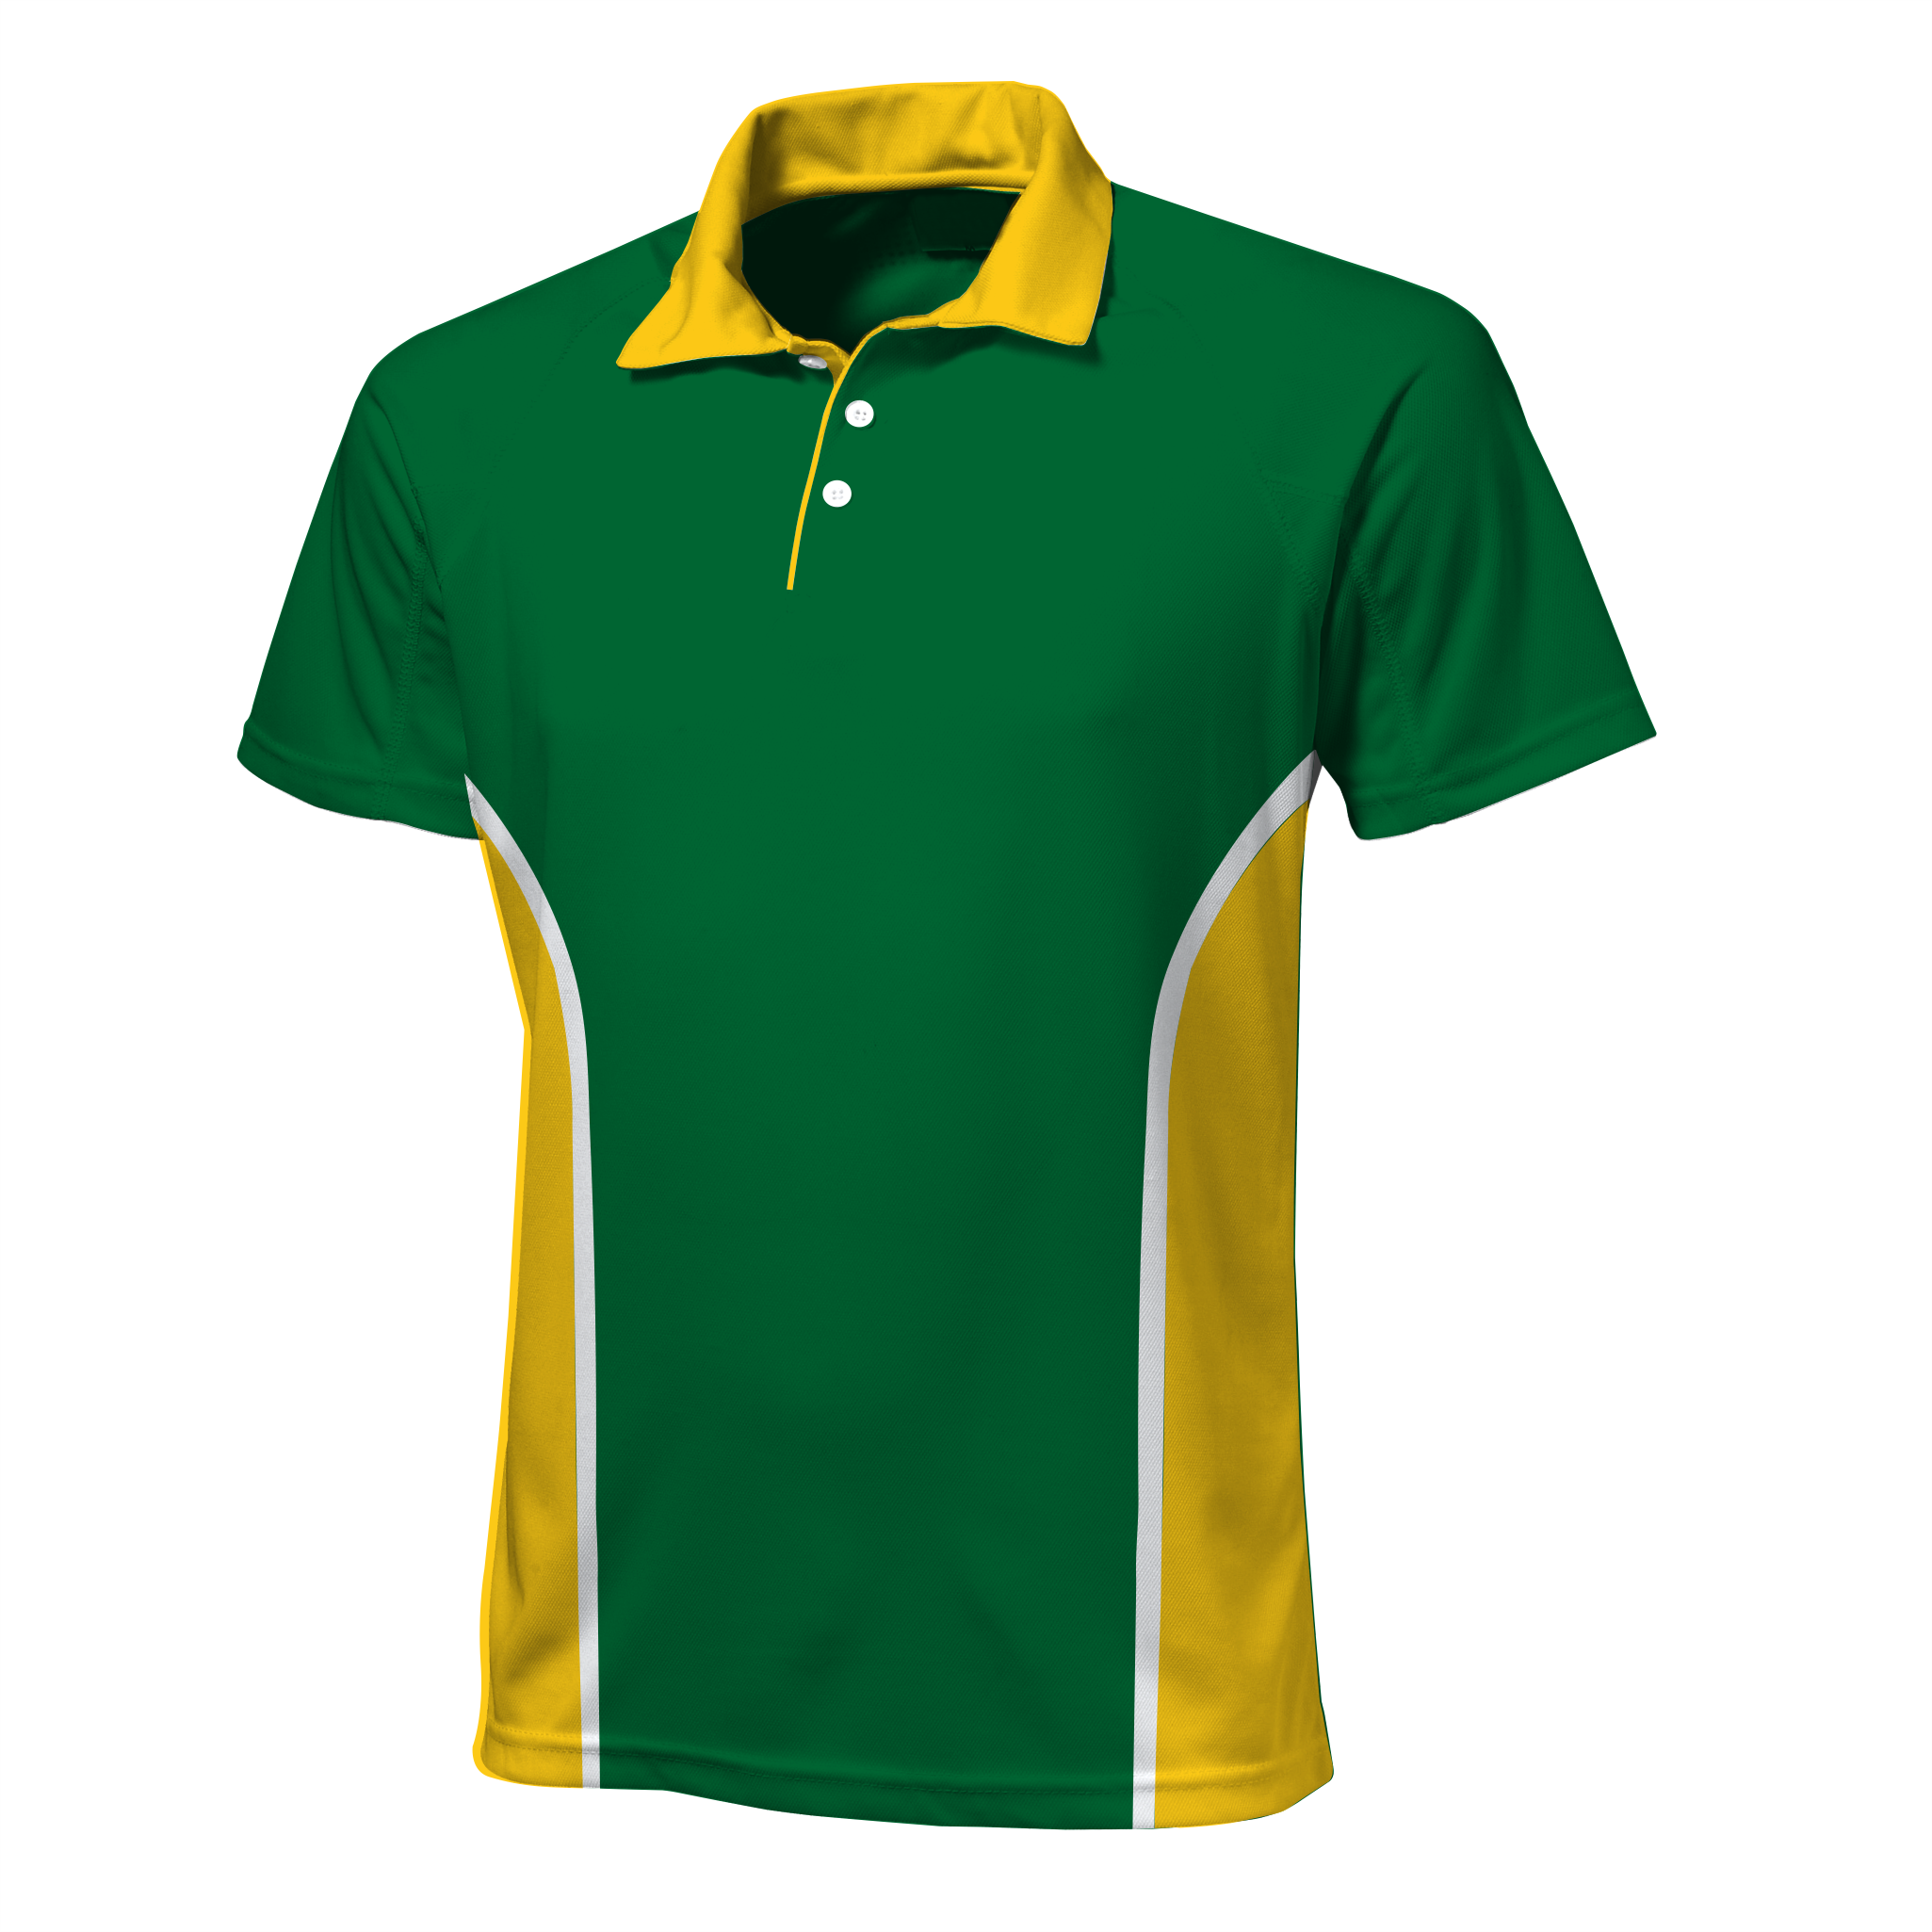 Panelled Zuco golfer - Bolt